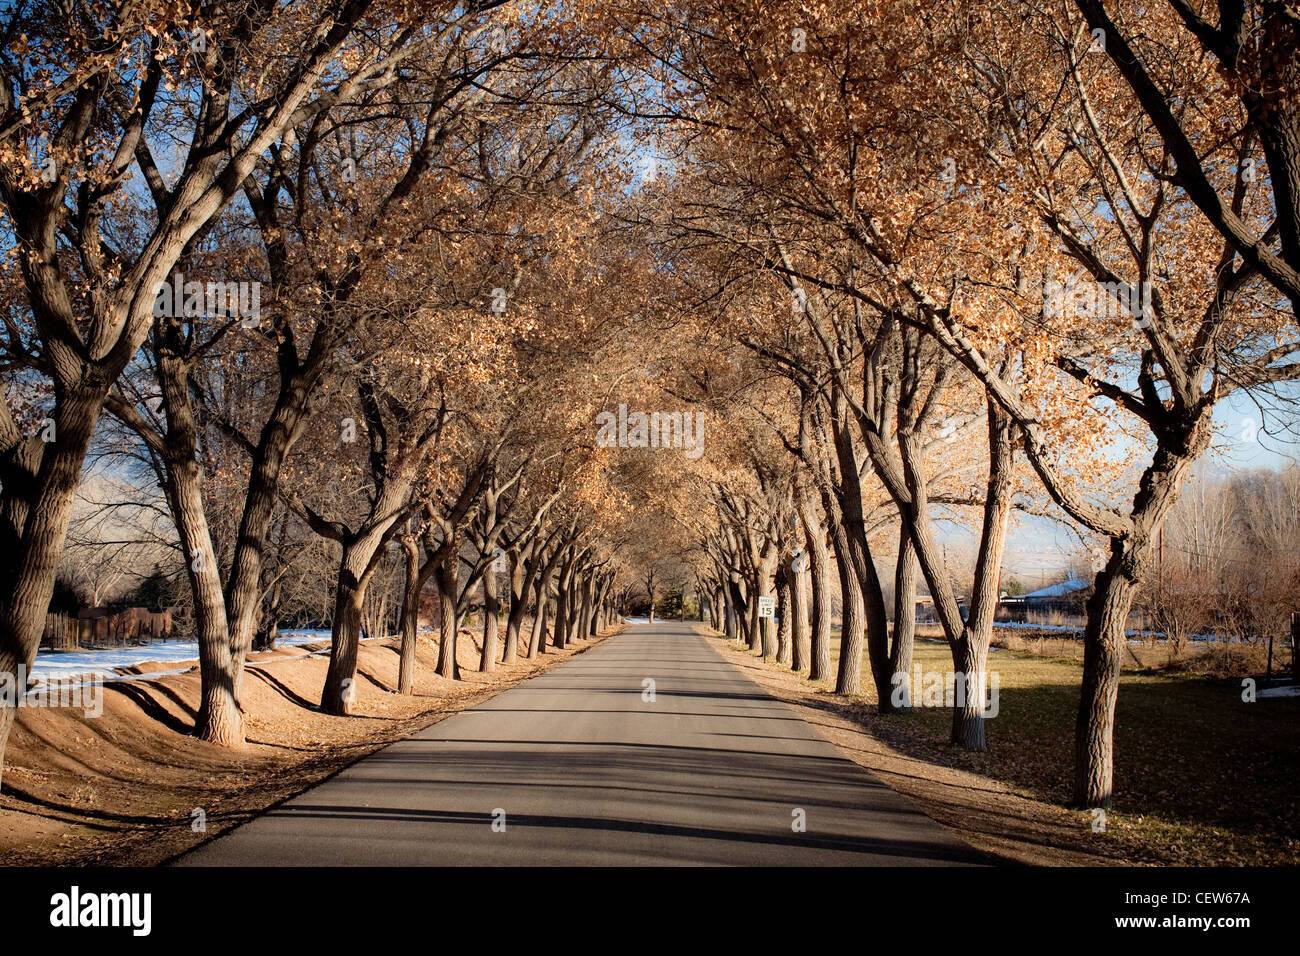 Tree lined road with shadows cast on pavement Stock Photo